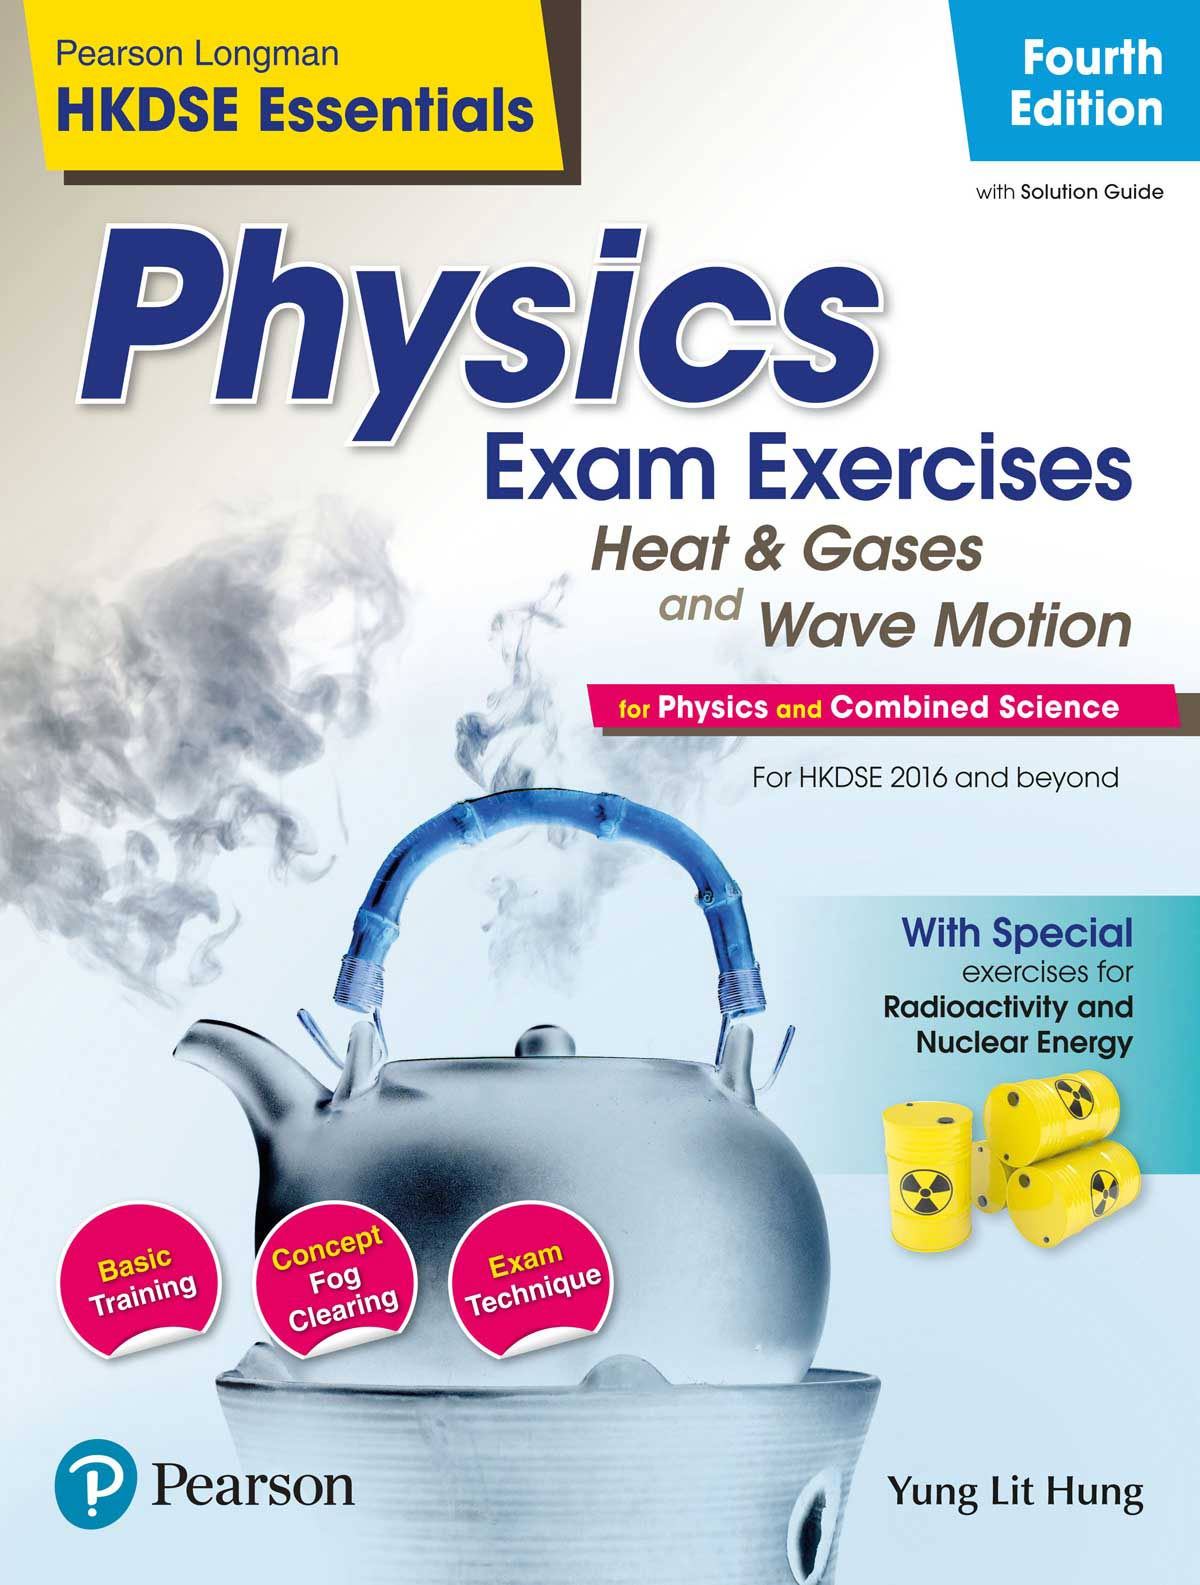 HKDSE Essentials: Physics Exam Exe: Heat and Gases · Wave Motion (4E)